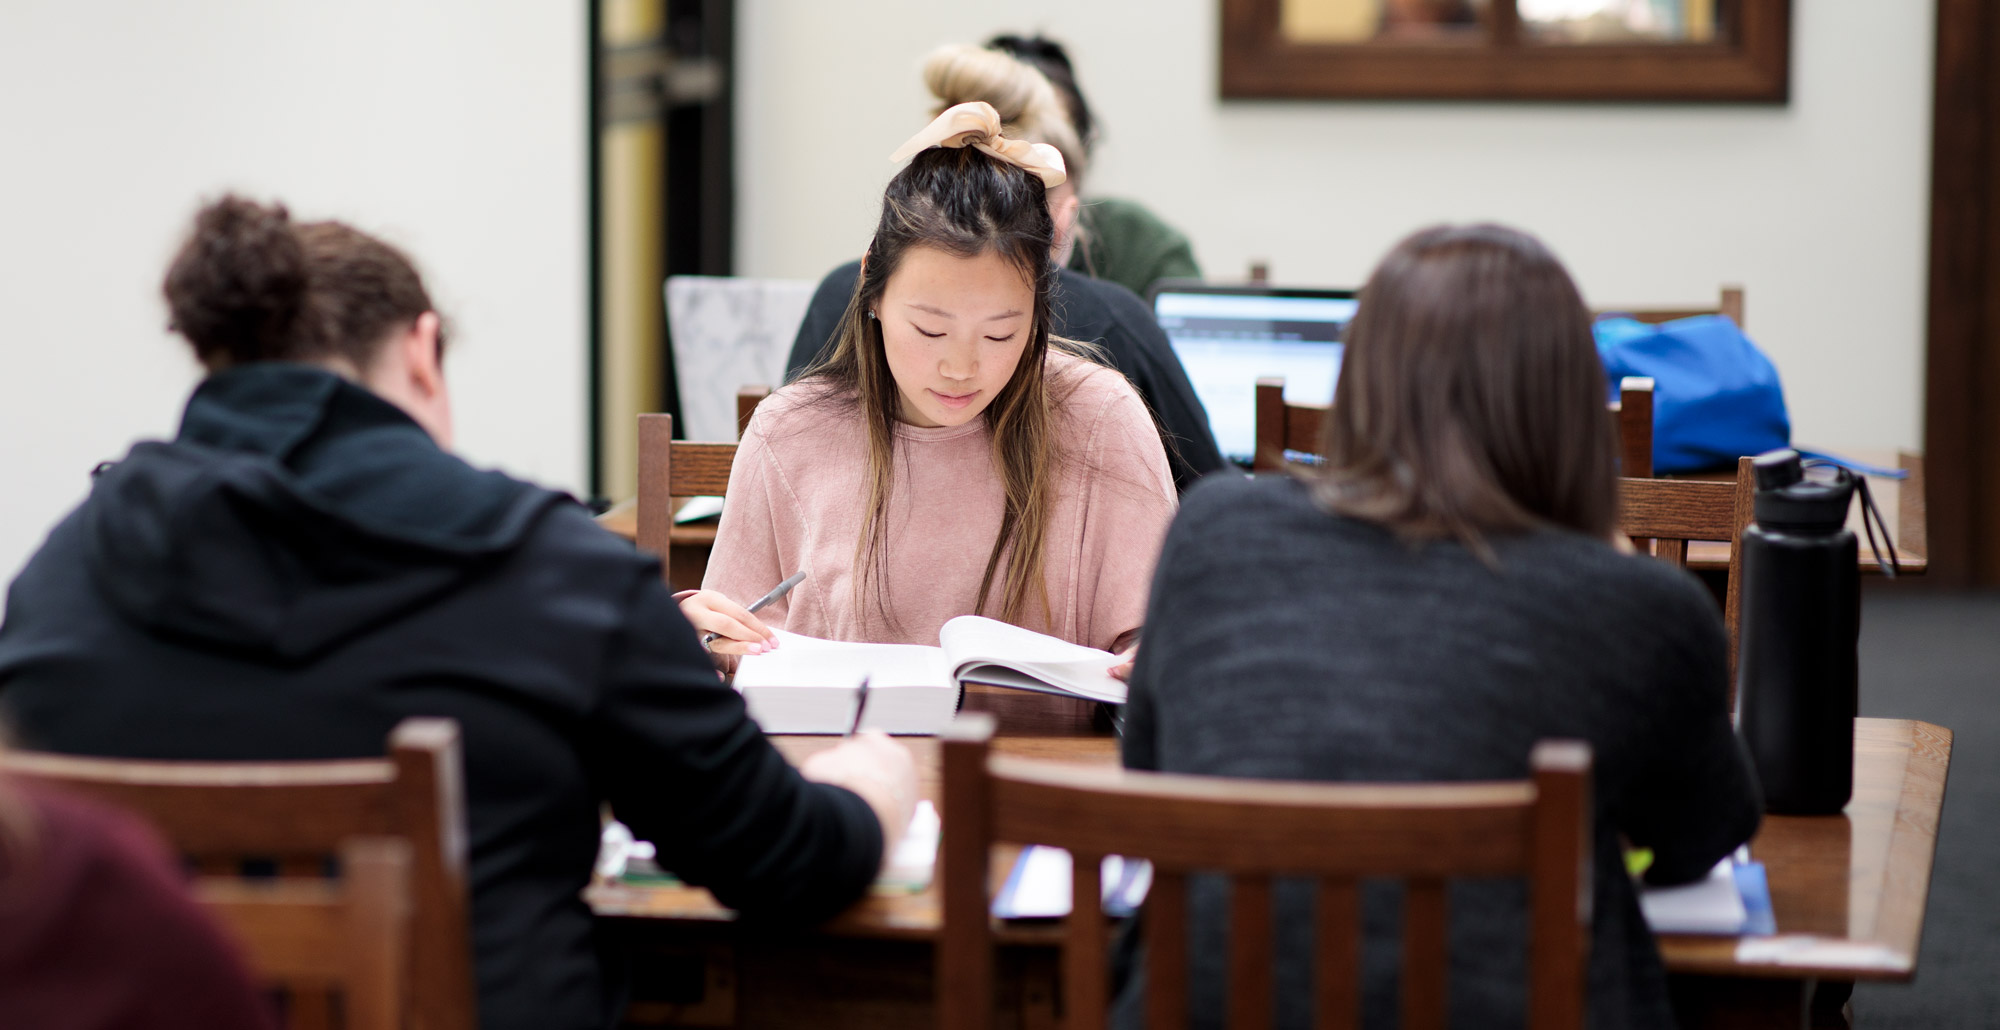 Student studies with peers in the library.